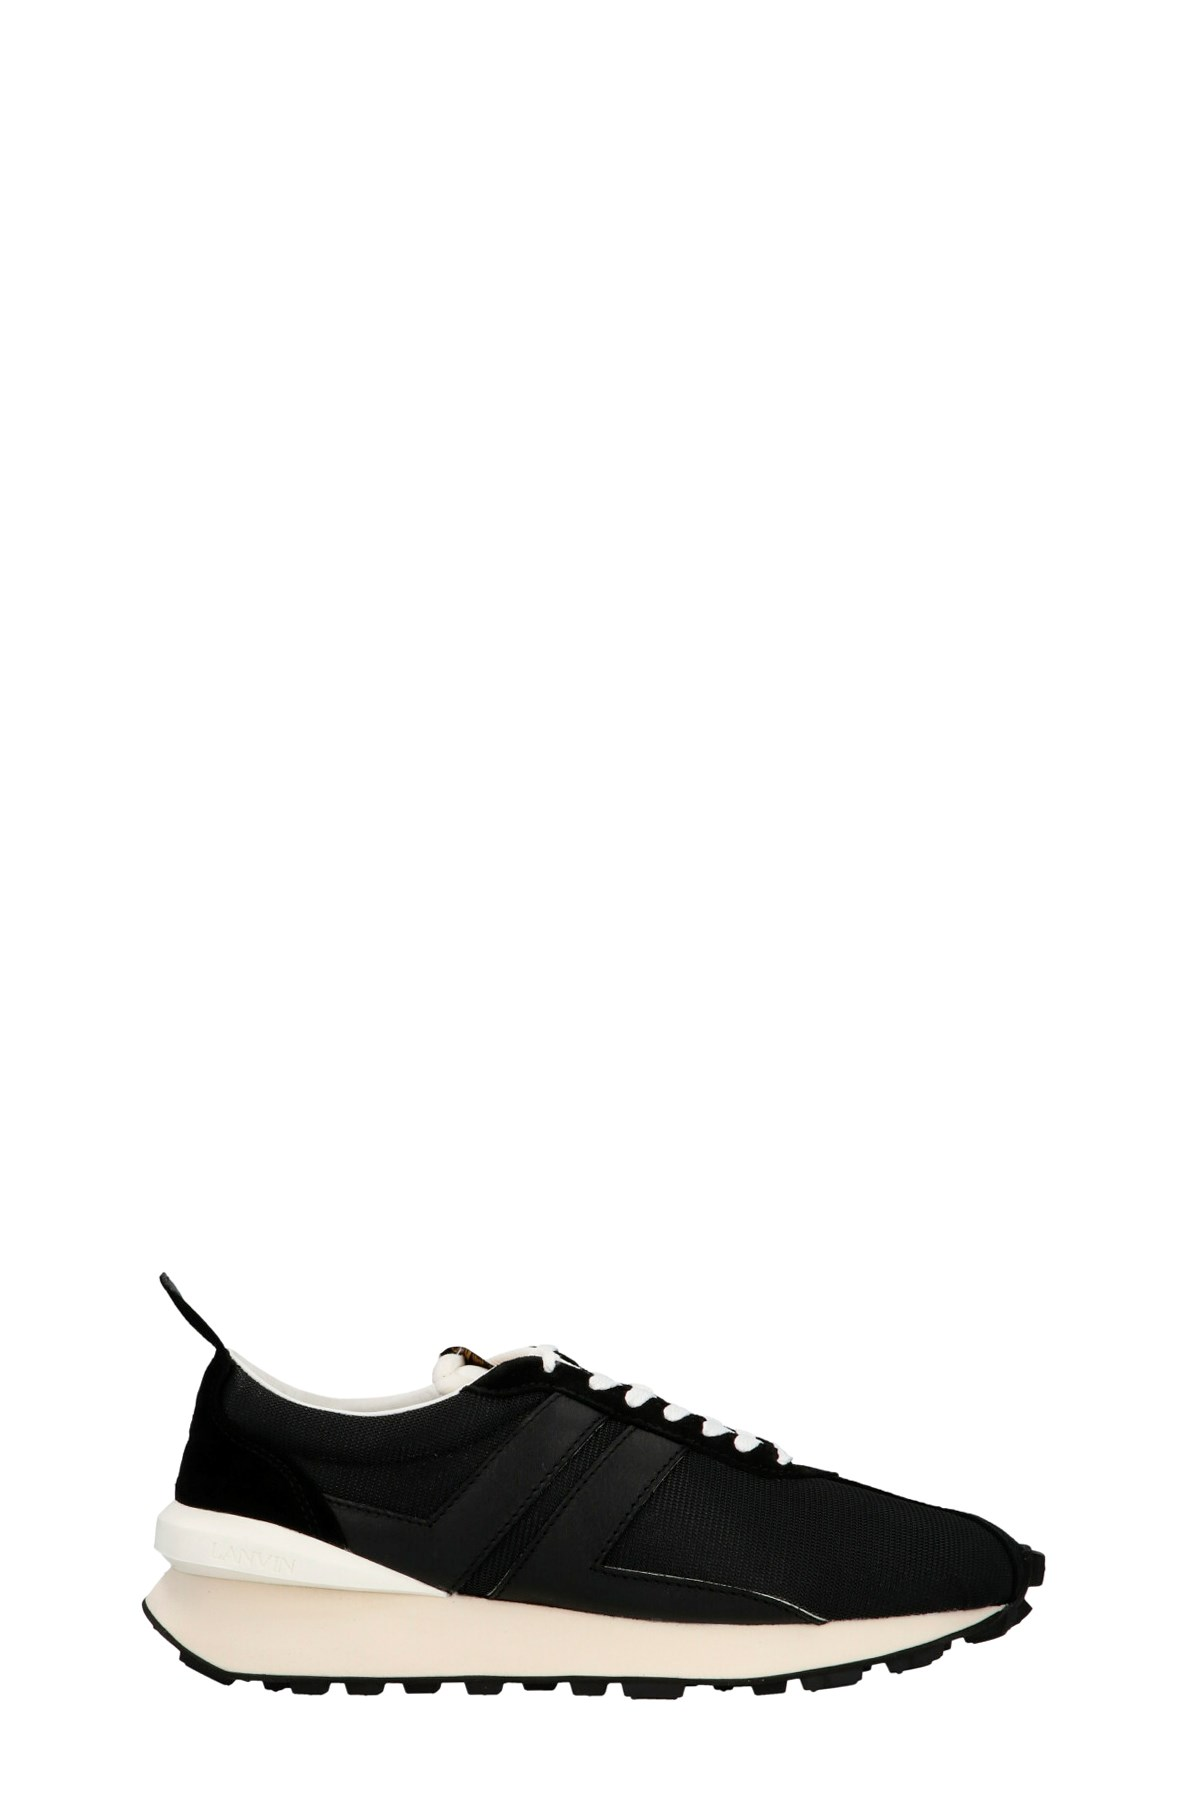 lanvin Running sneakers available on